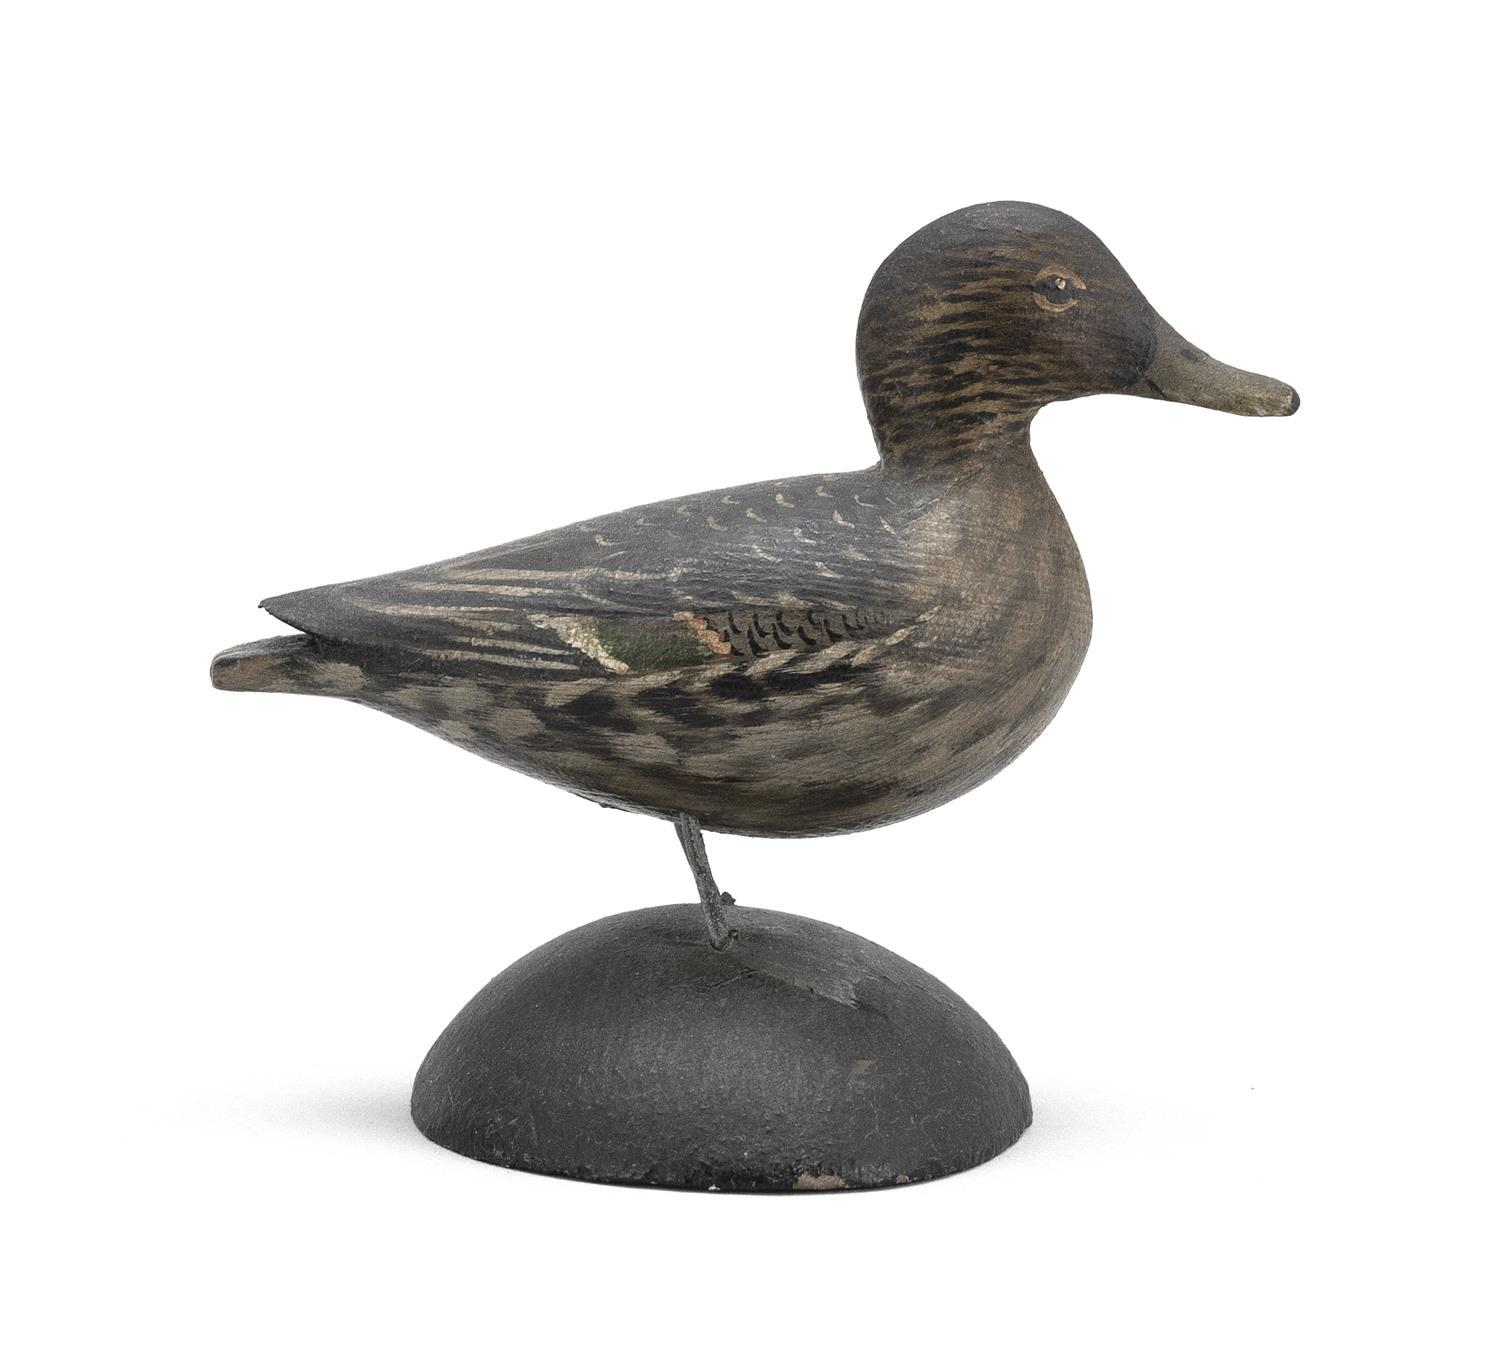 "A. ELMER CROWELL MINIATURE PINTAIL HEN Rectangular brand. Length 3.25"". From the Mr. & Mrs. Ken DeLong Collection of Bird Carvings."